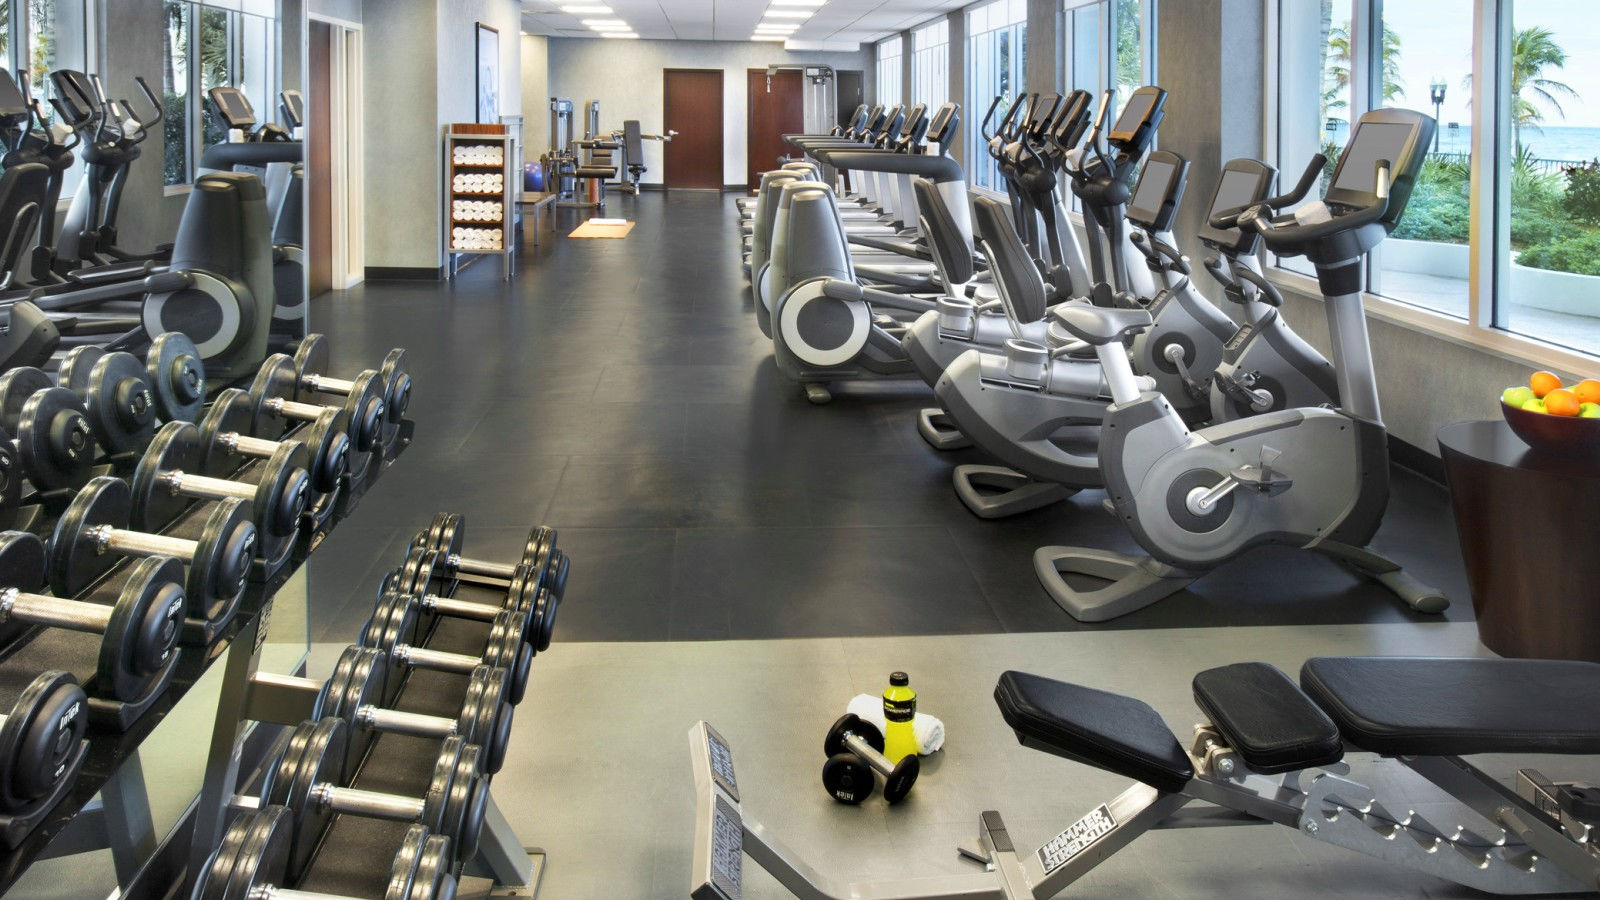 WestinWORKOUT® Fitness Studio at The Westin Fort Lauderdale Beach Resort